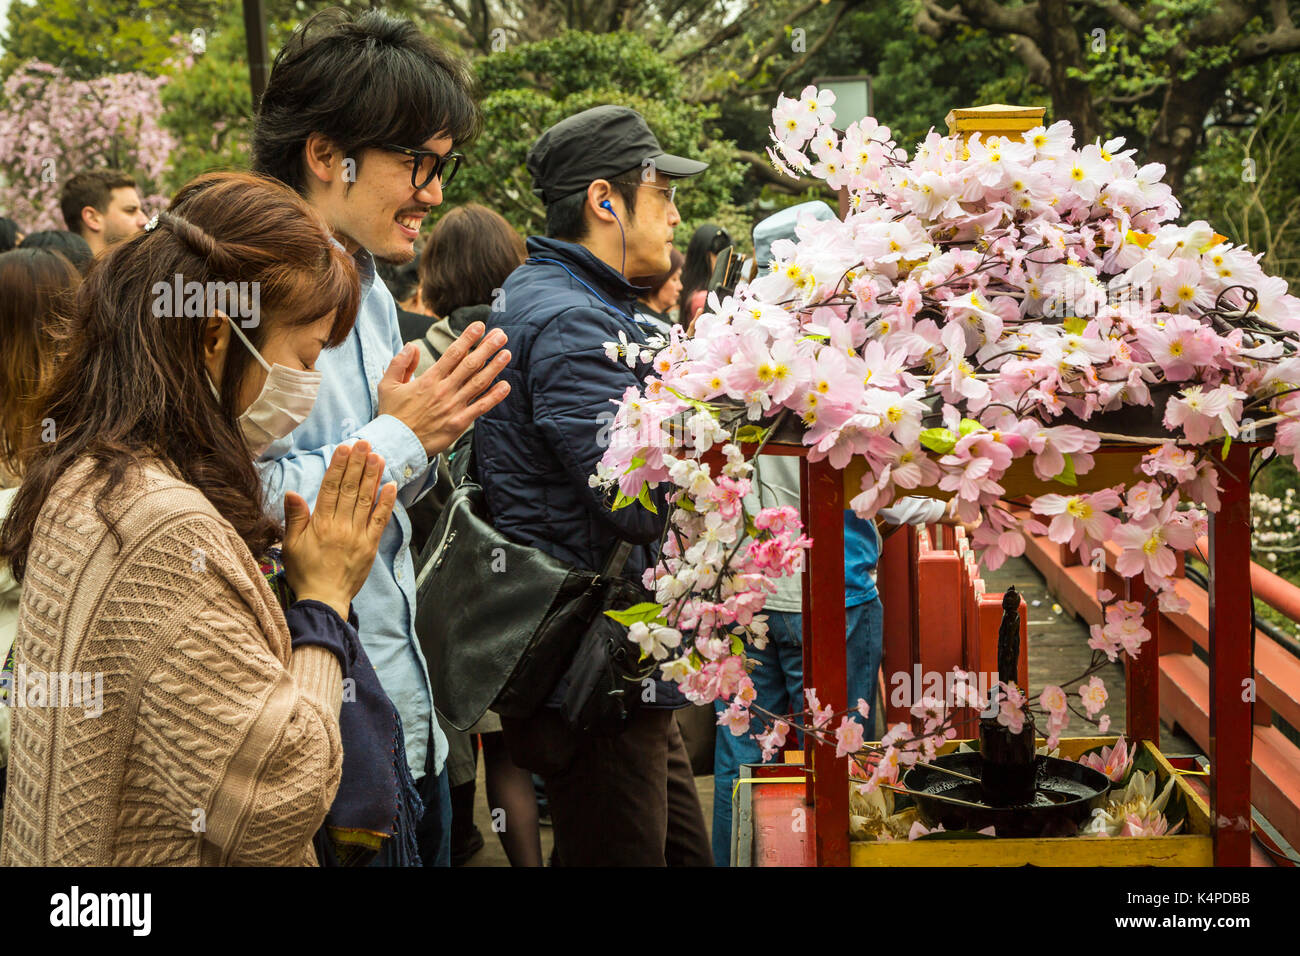 Cherry blossoms and Japanese worshipers at a Buddhist shrine in Ueno Onshi Park, Taito, Tokyo, Japan, Asia. - Stock Image